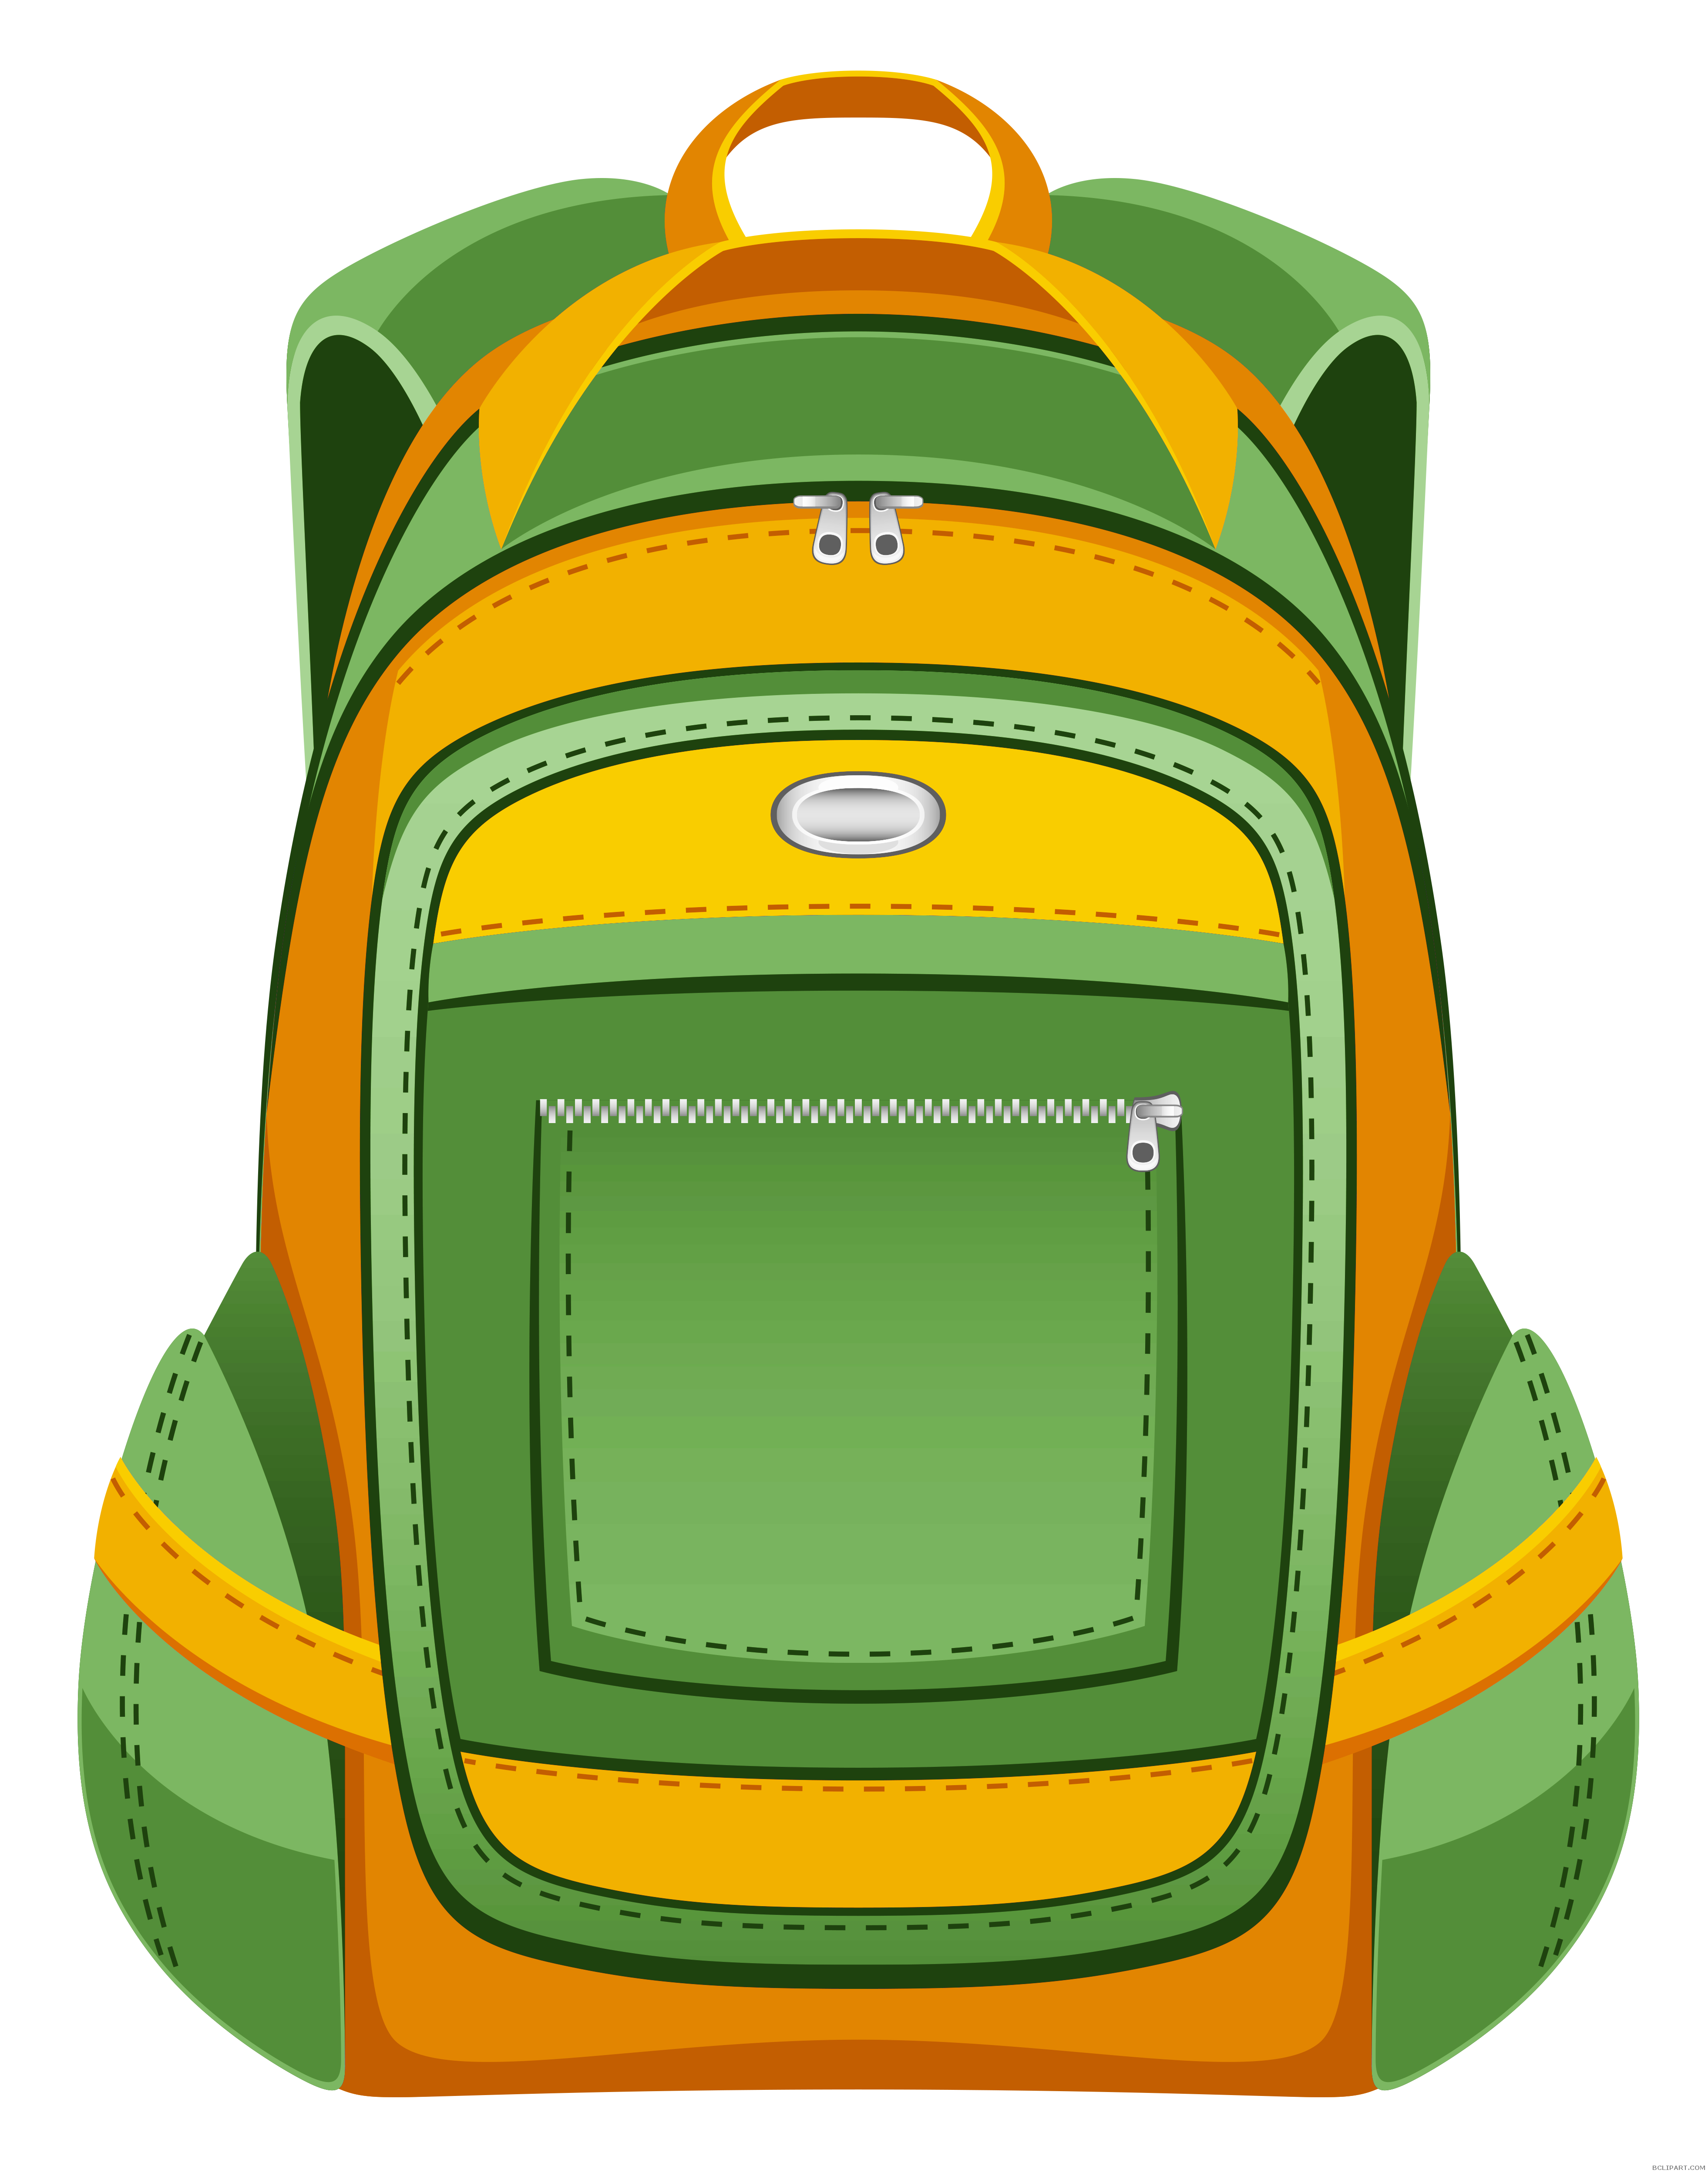 Clipart backpack school tool. Bclipart tools free images